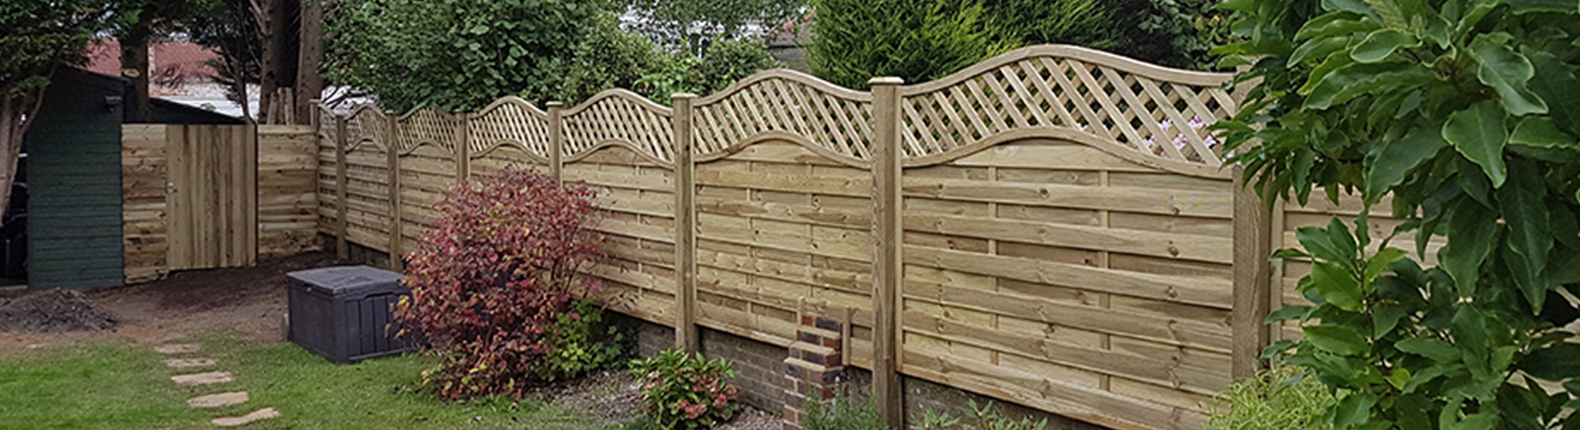 How to Erect Garden Fence Panels - AVS Fencing Supplies